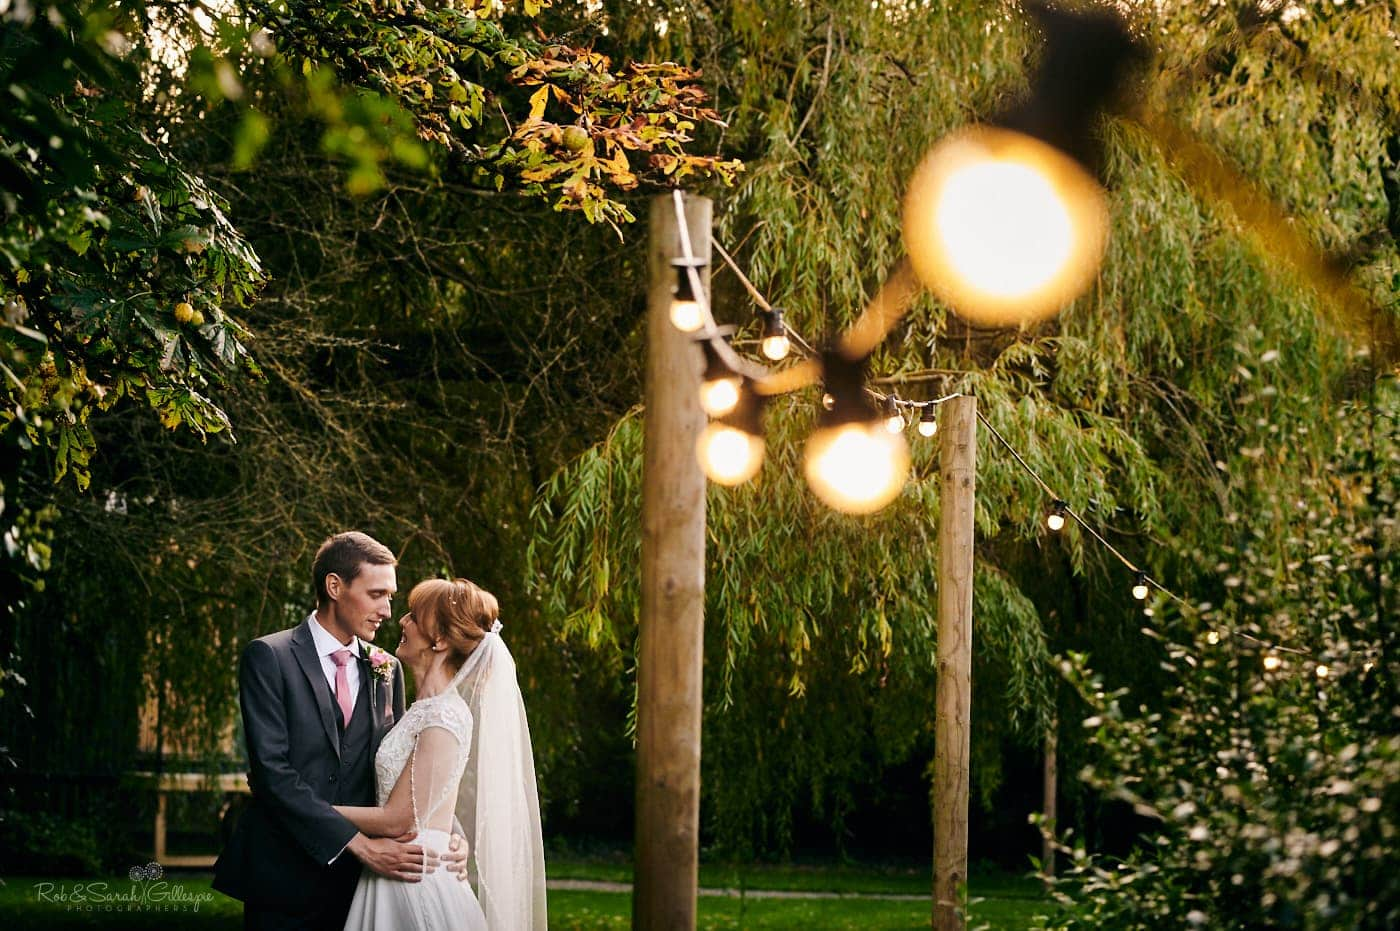 Bride and groom in gardens at Pendrell Hall with trees and festoon lights